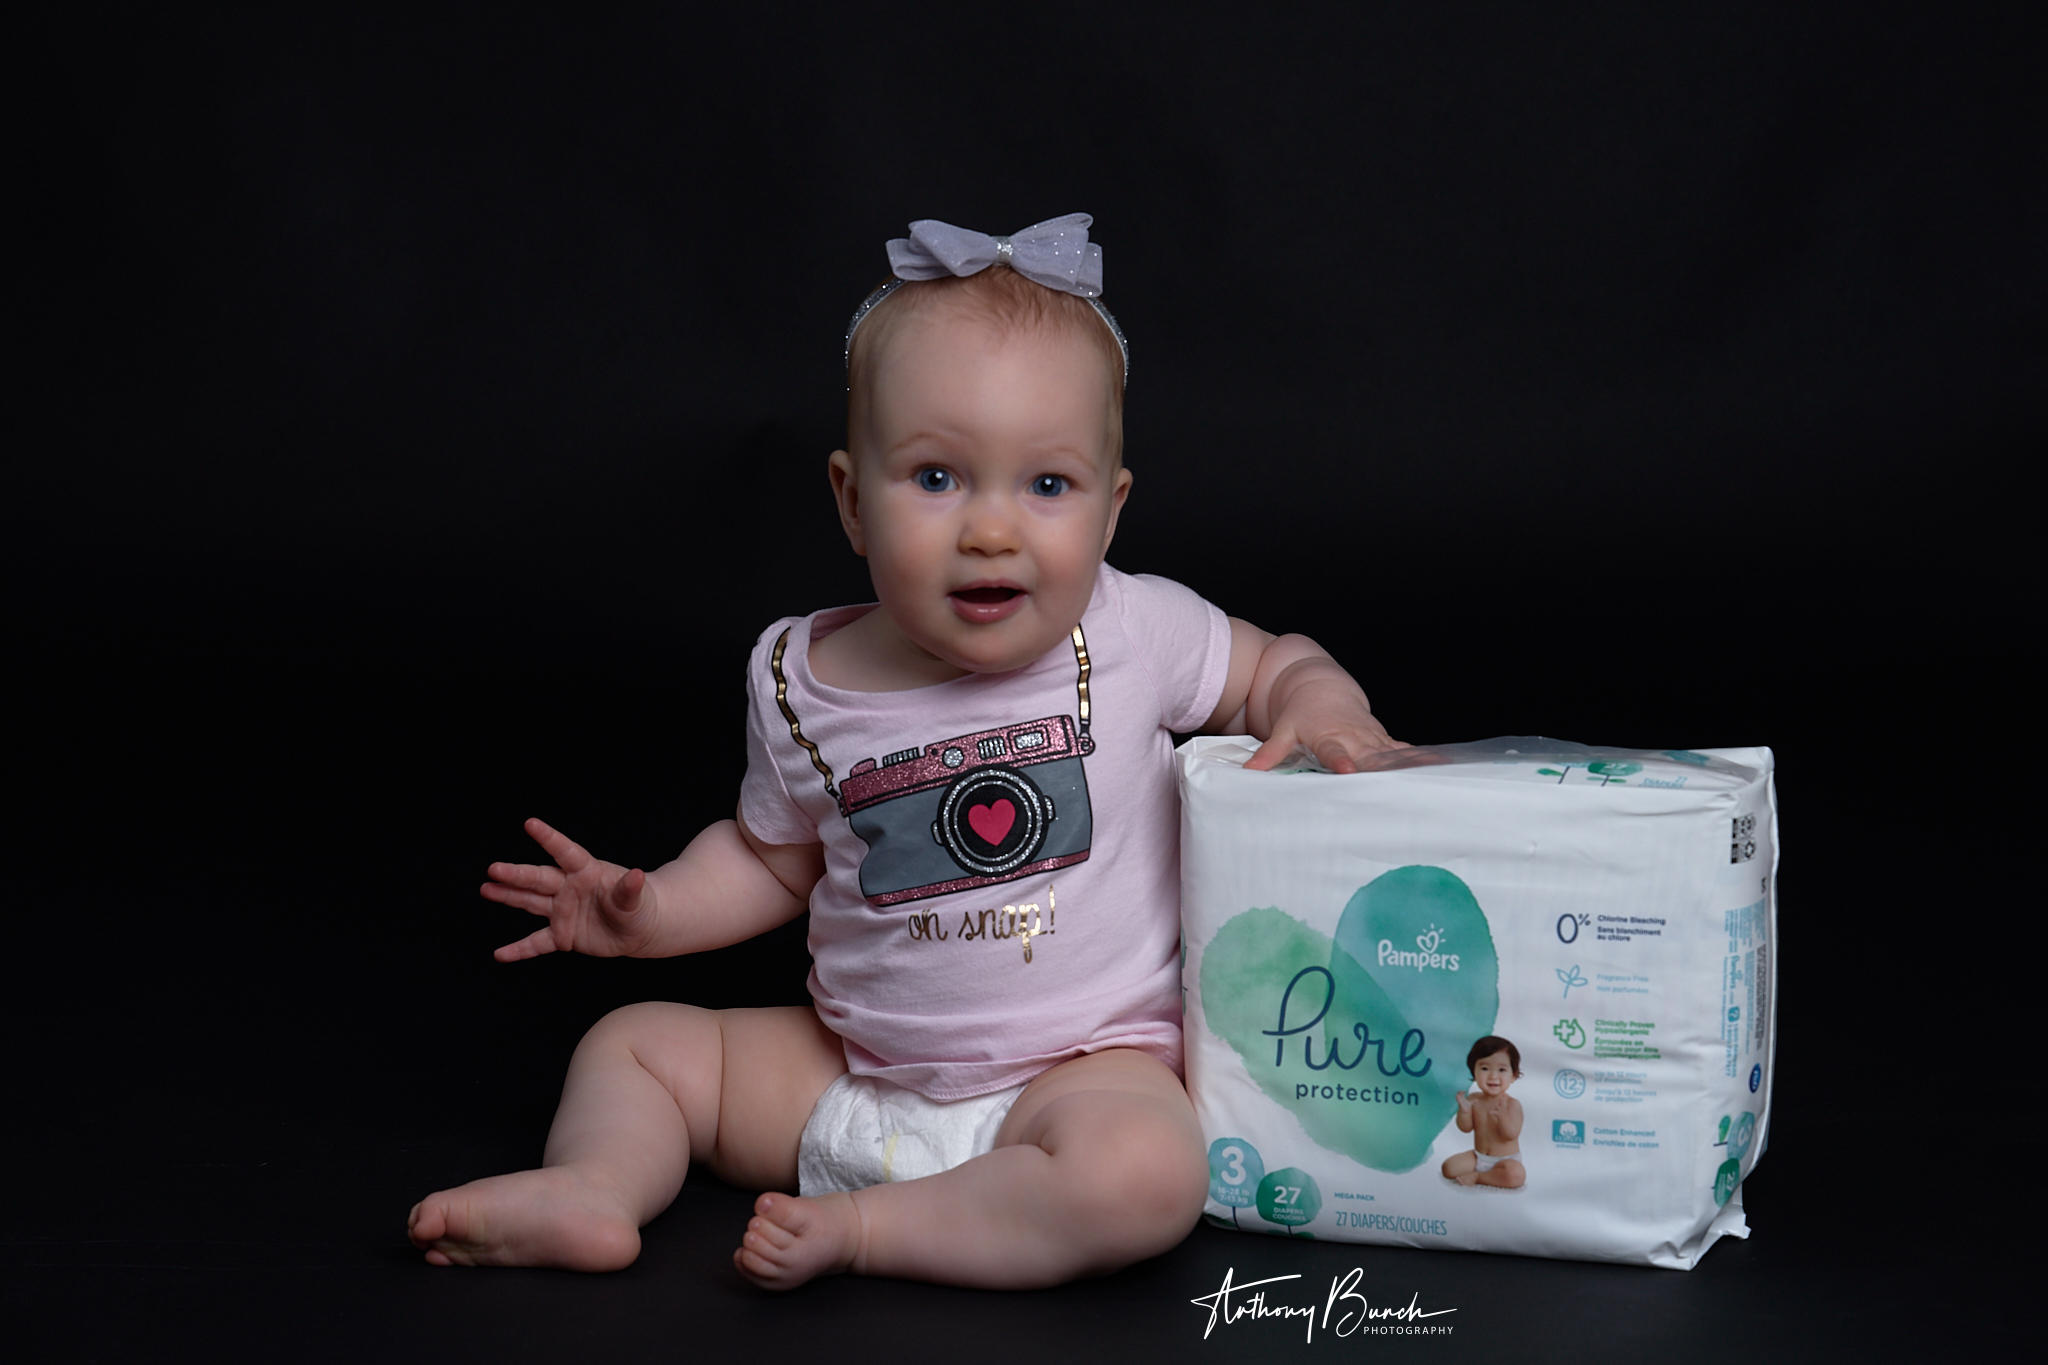 My Favorite Baby Product Series: Pamper Diapers